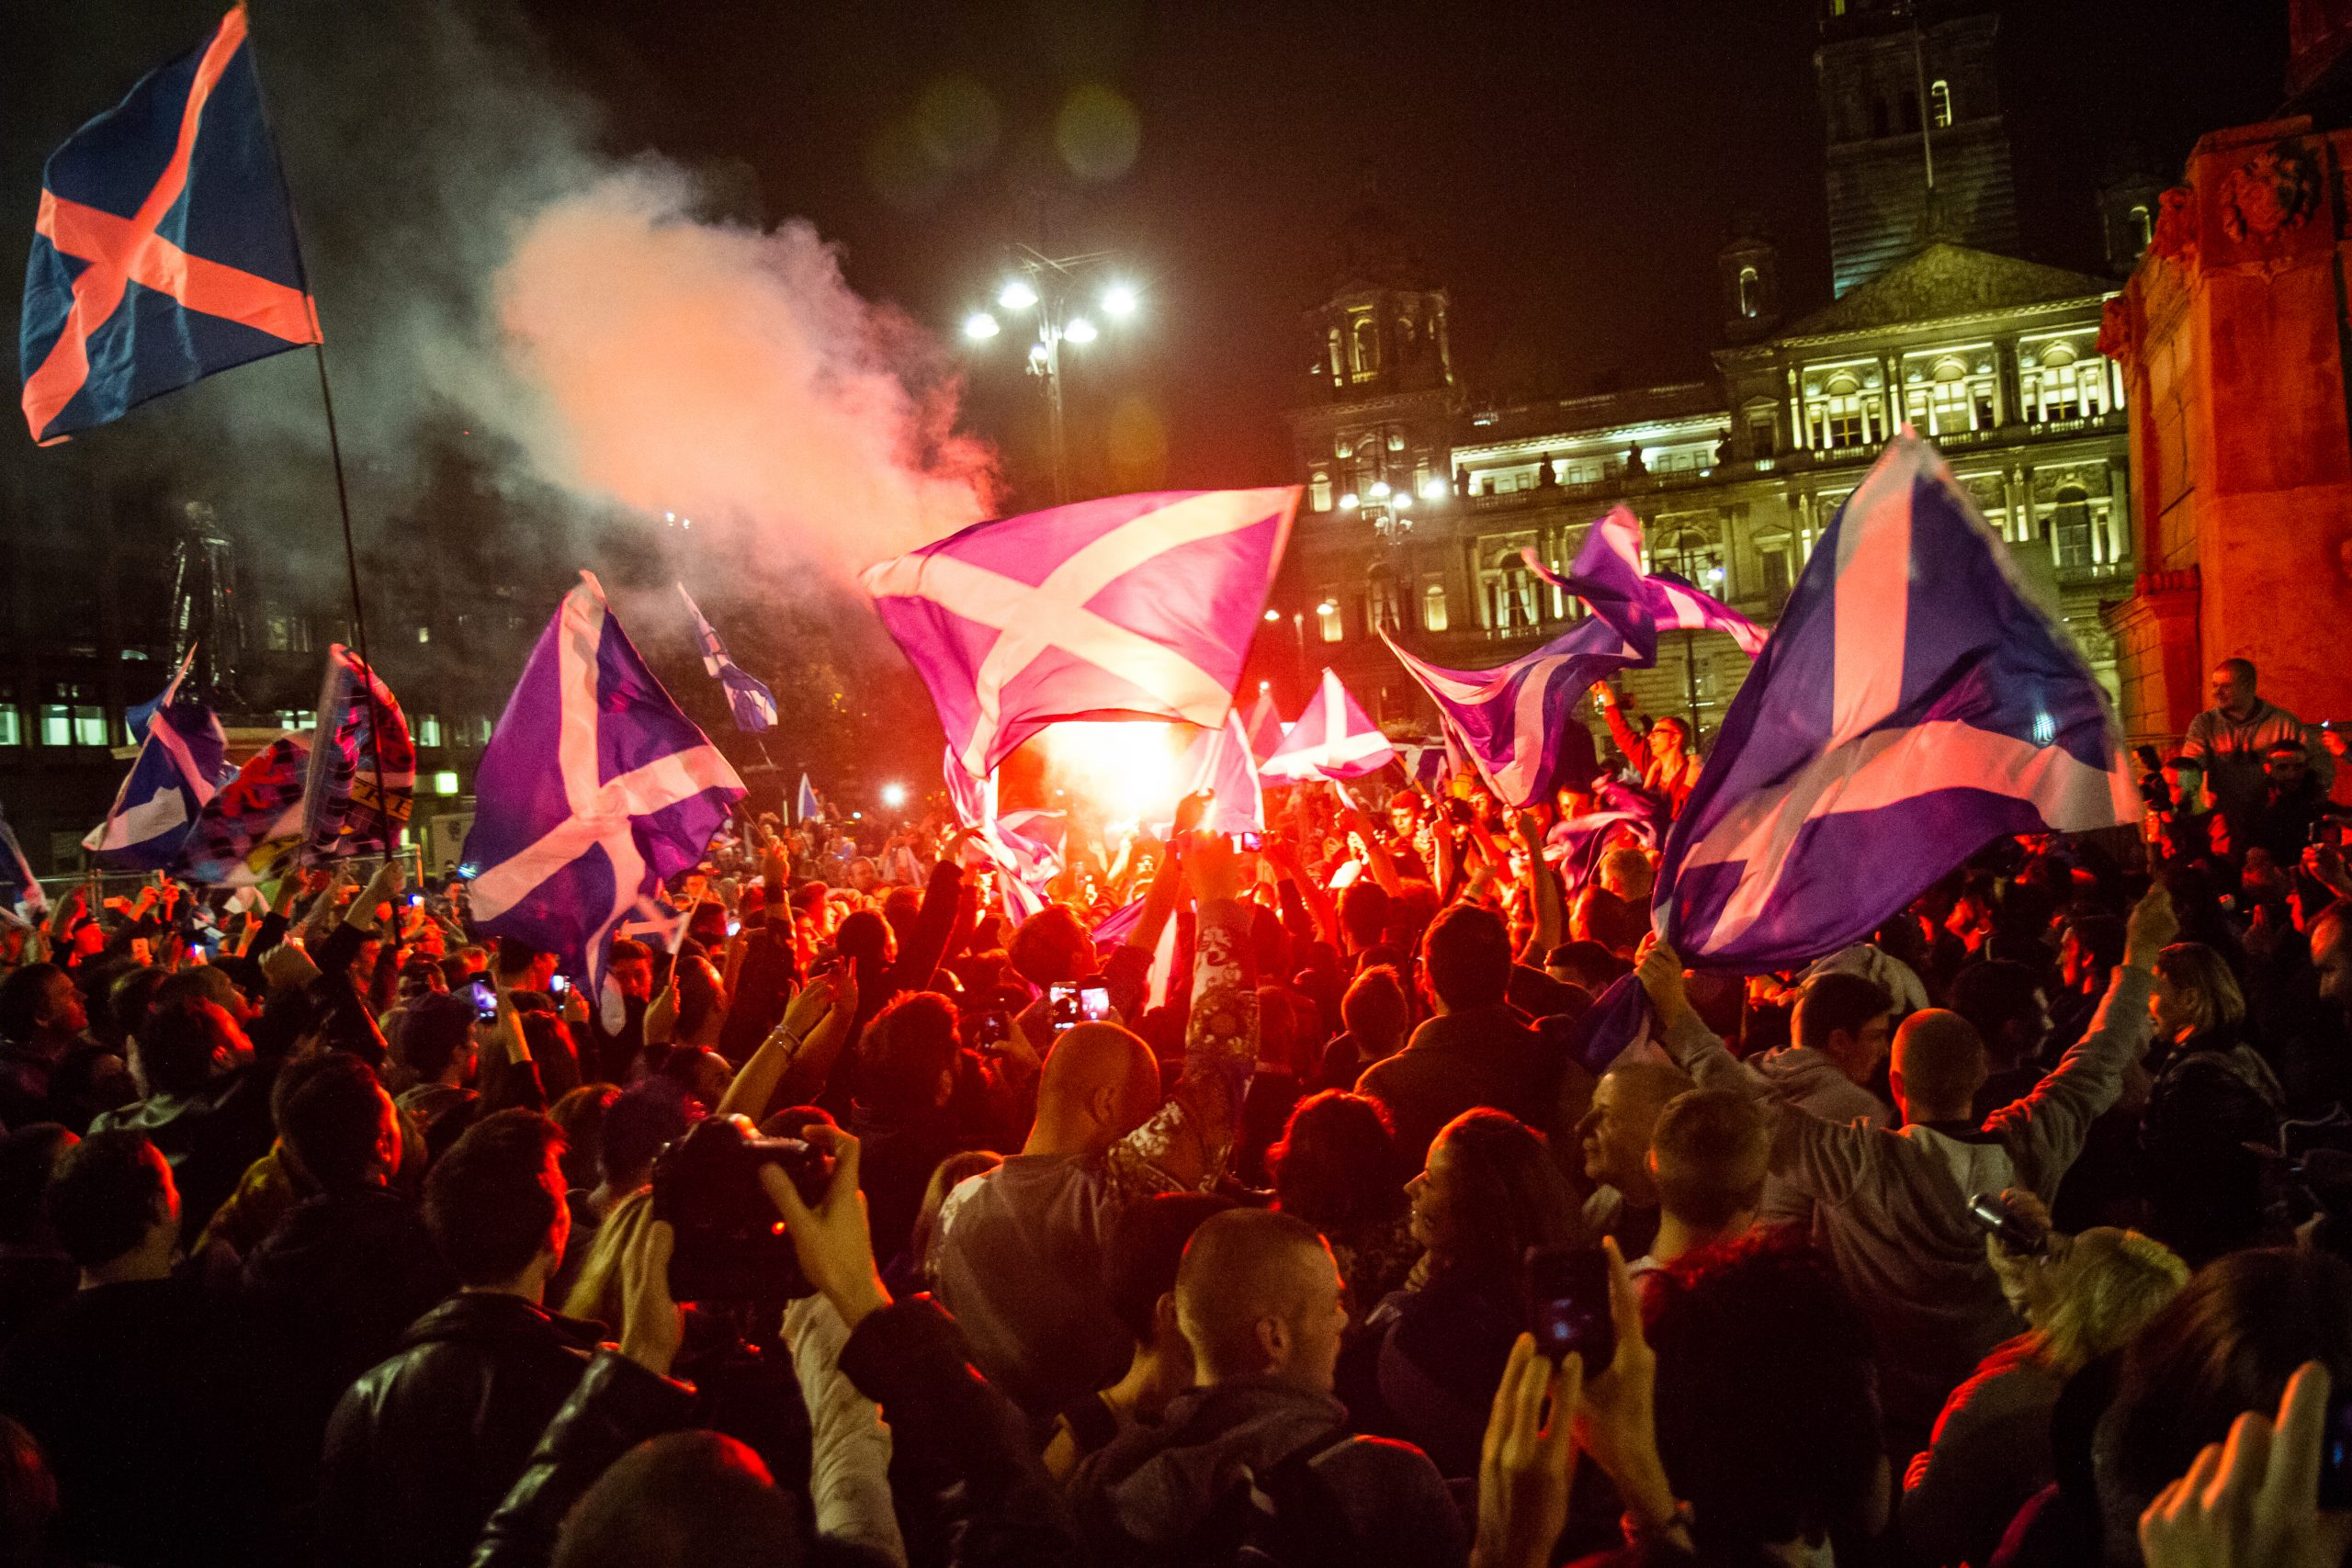 A crowd with Scotland flags at night in George Square Glasgow